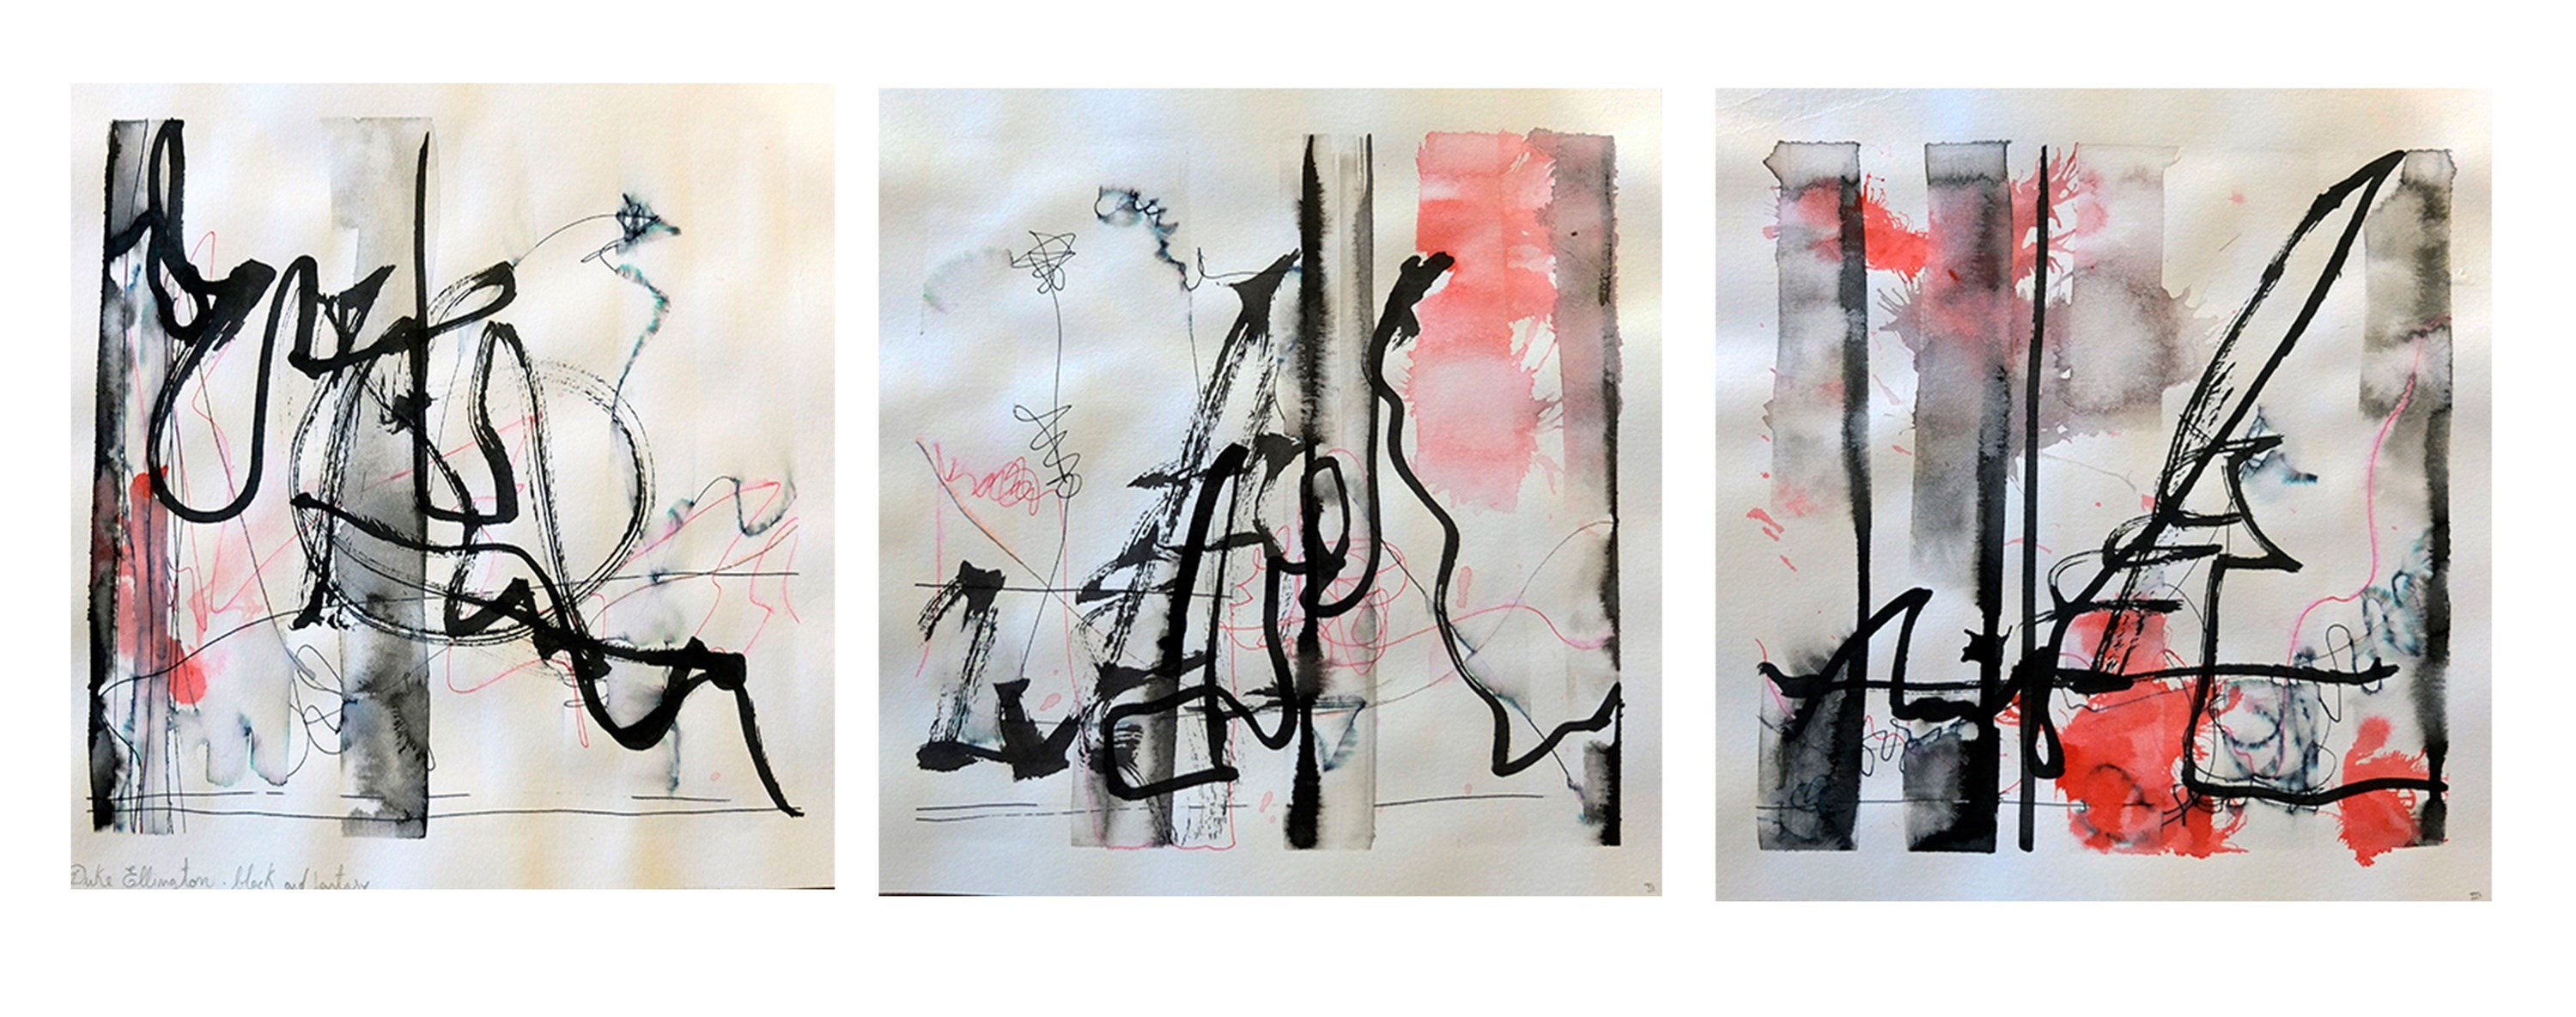 Duke Ellington - Black and Fantasy (I,II,III), original Abstract Gouache Painting by Mariana Alves